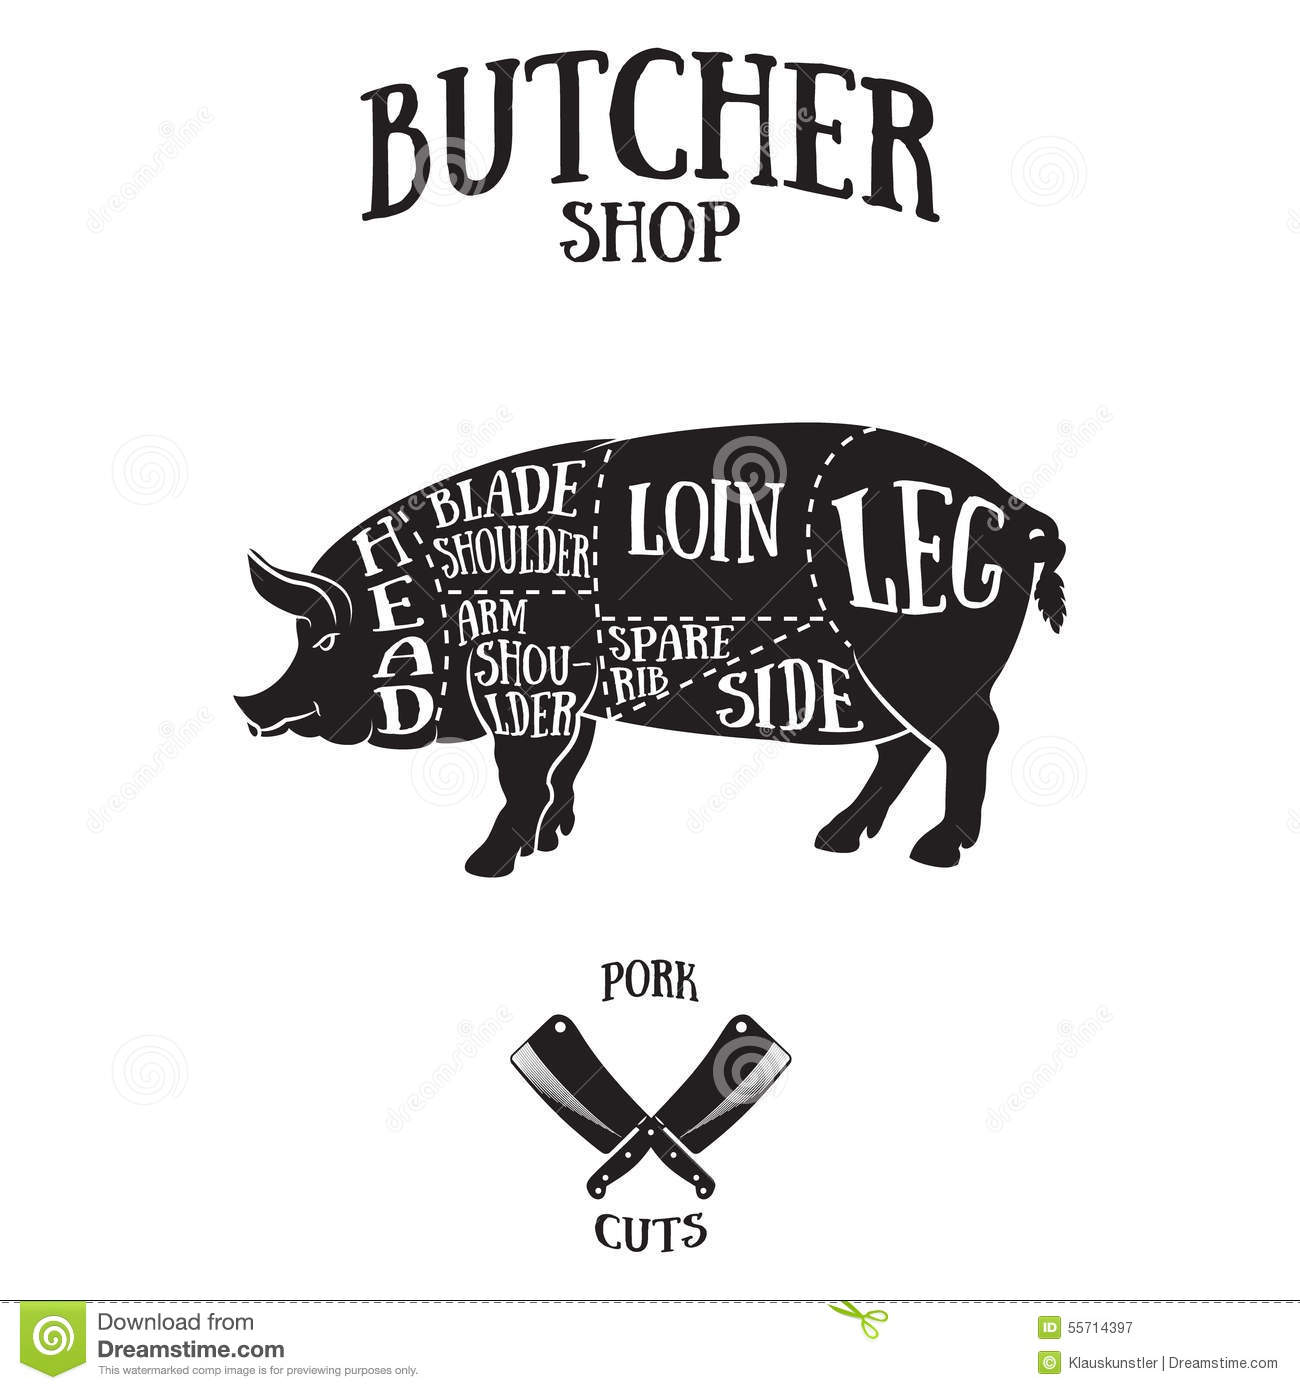 pork butcher cuts diagram 2003 ford expedition wiring for radio scheme of stock vector illustration